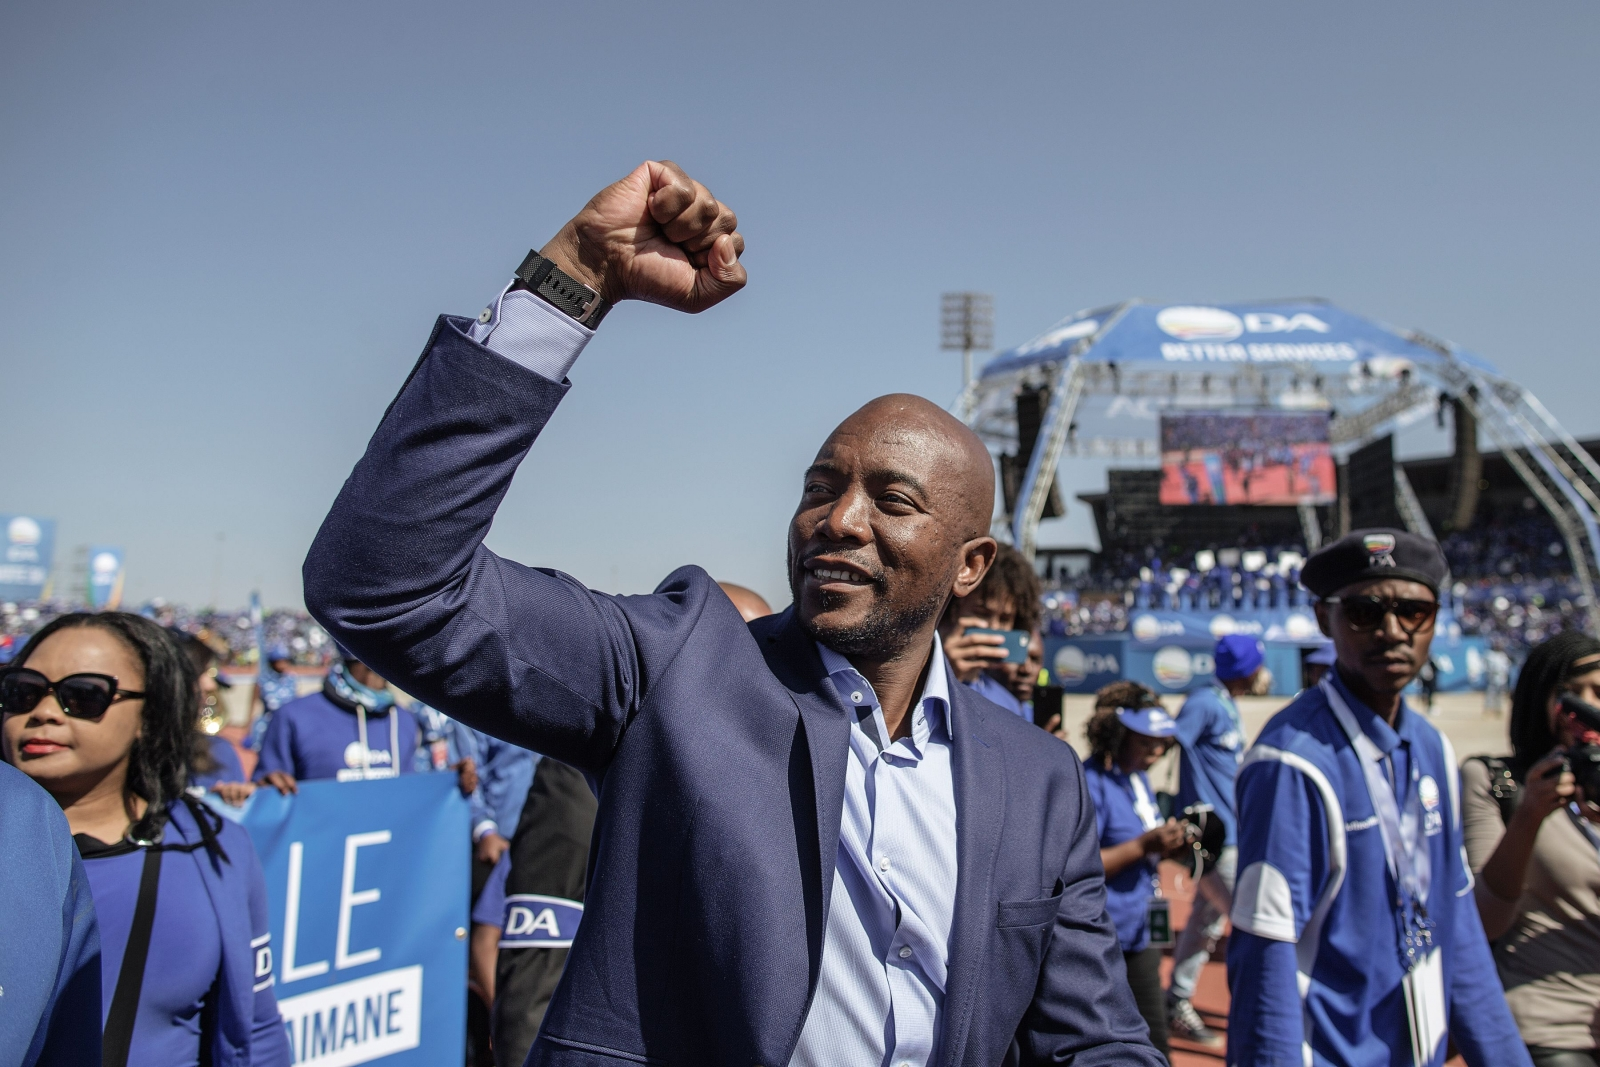 Democratic Alliance leader Mmusi Maimane